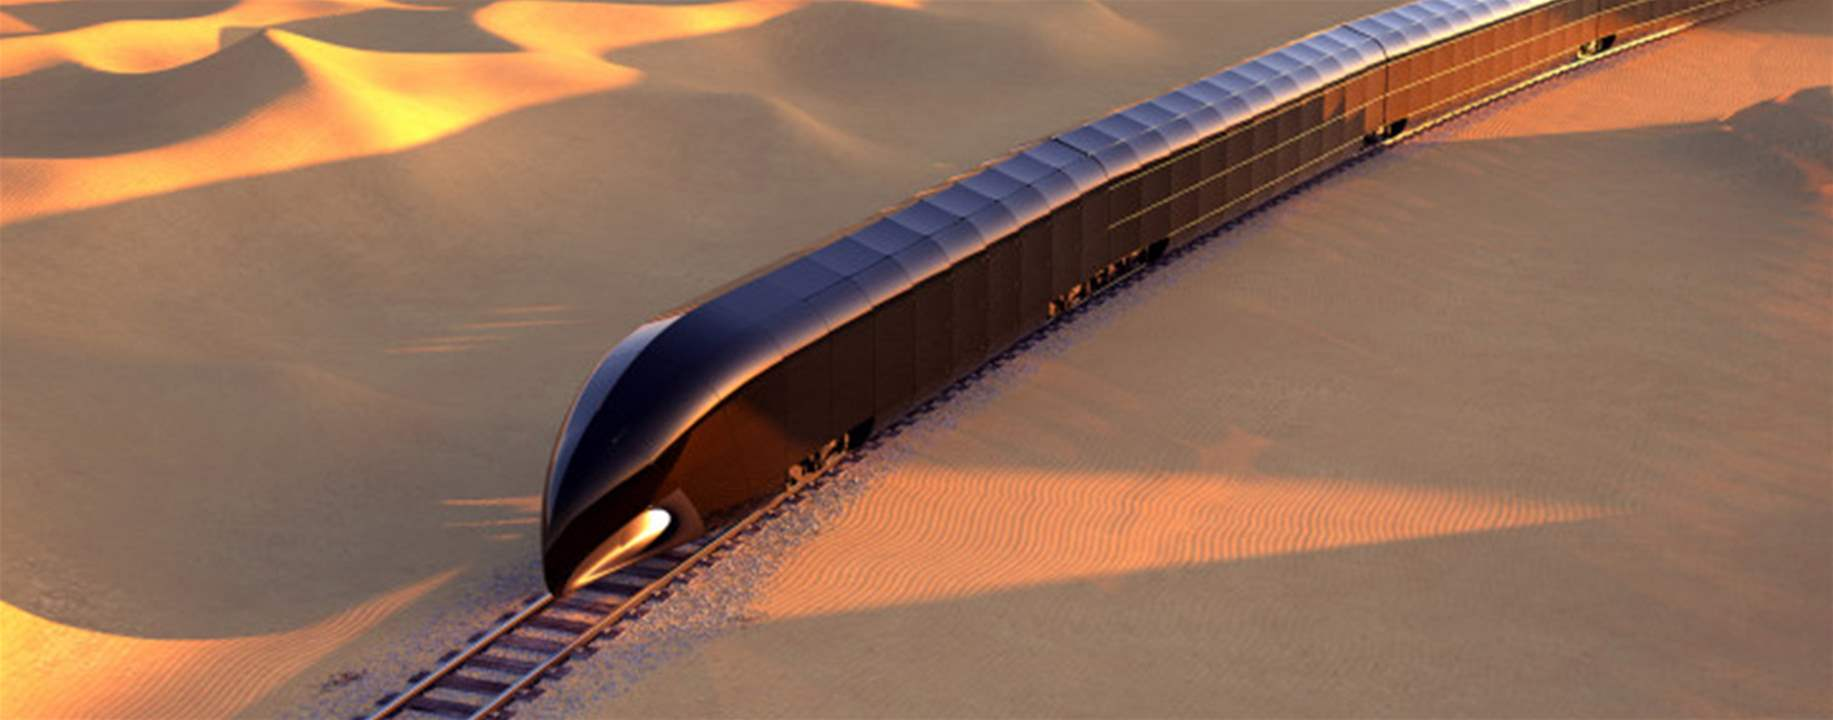 """$350M luxury train concept described as a """"Palace on Rails"""""""